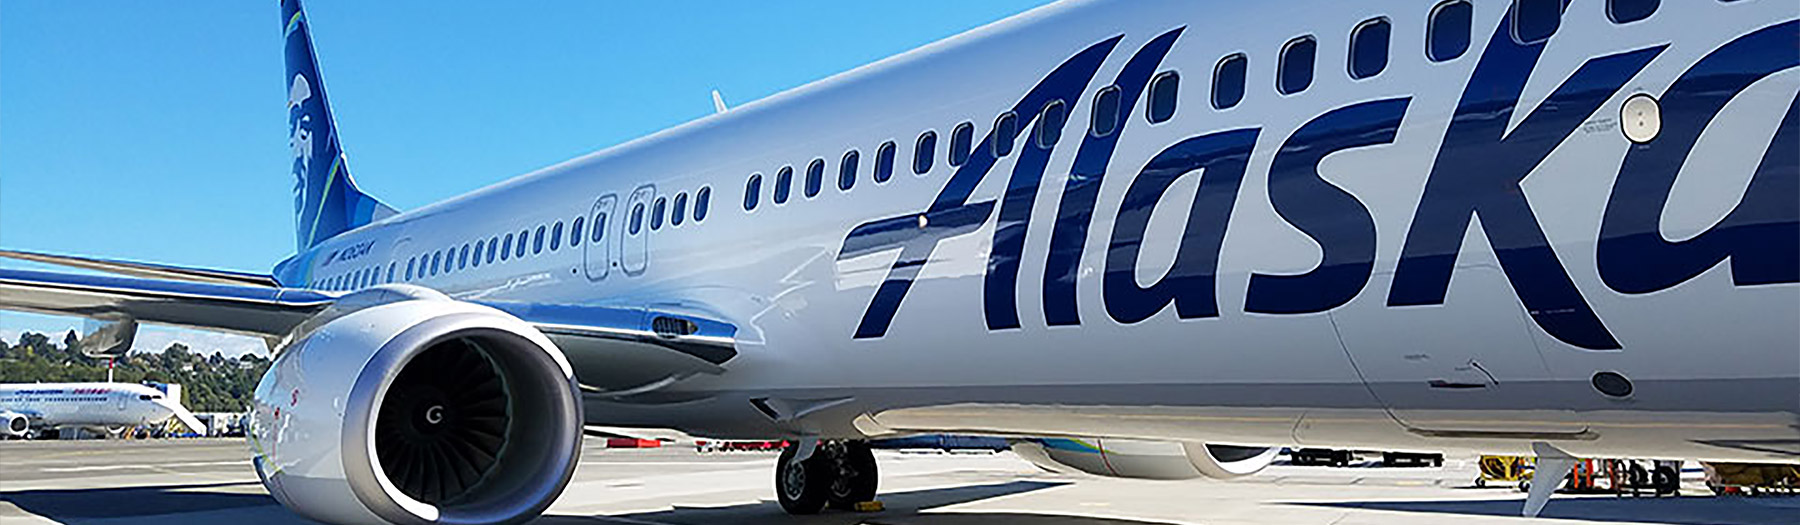 BlackWing Joins Alaska Airlines on 737-900ER Inaugural Flight.